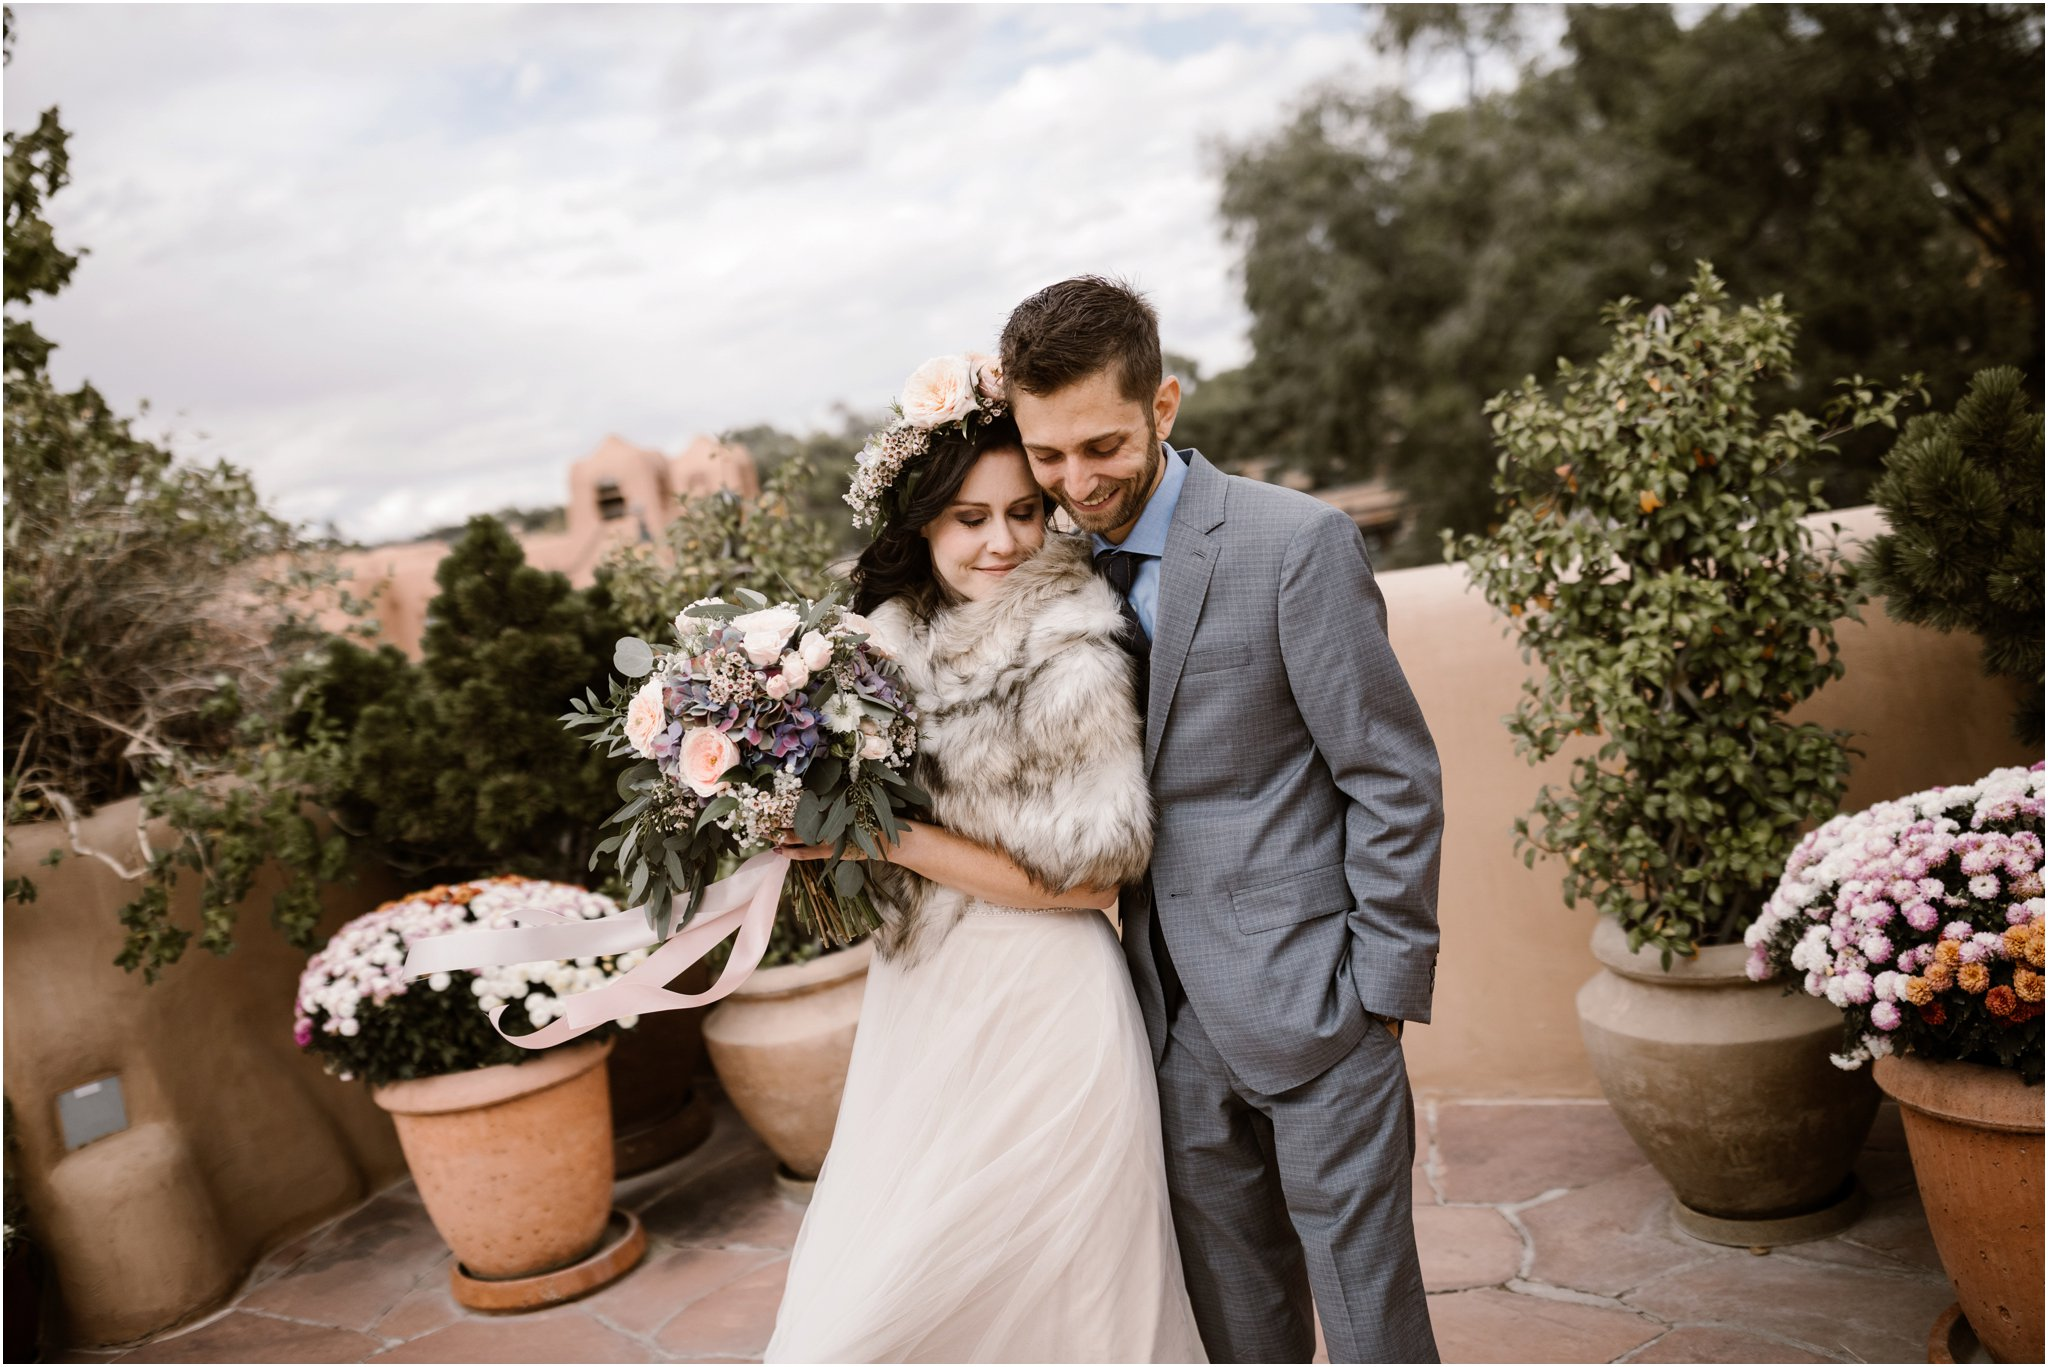 Santa Fe Wedding Photography at La Fonda Hotel